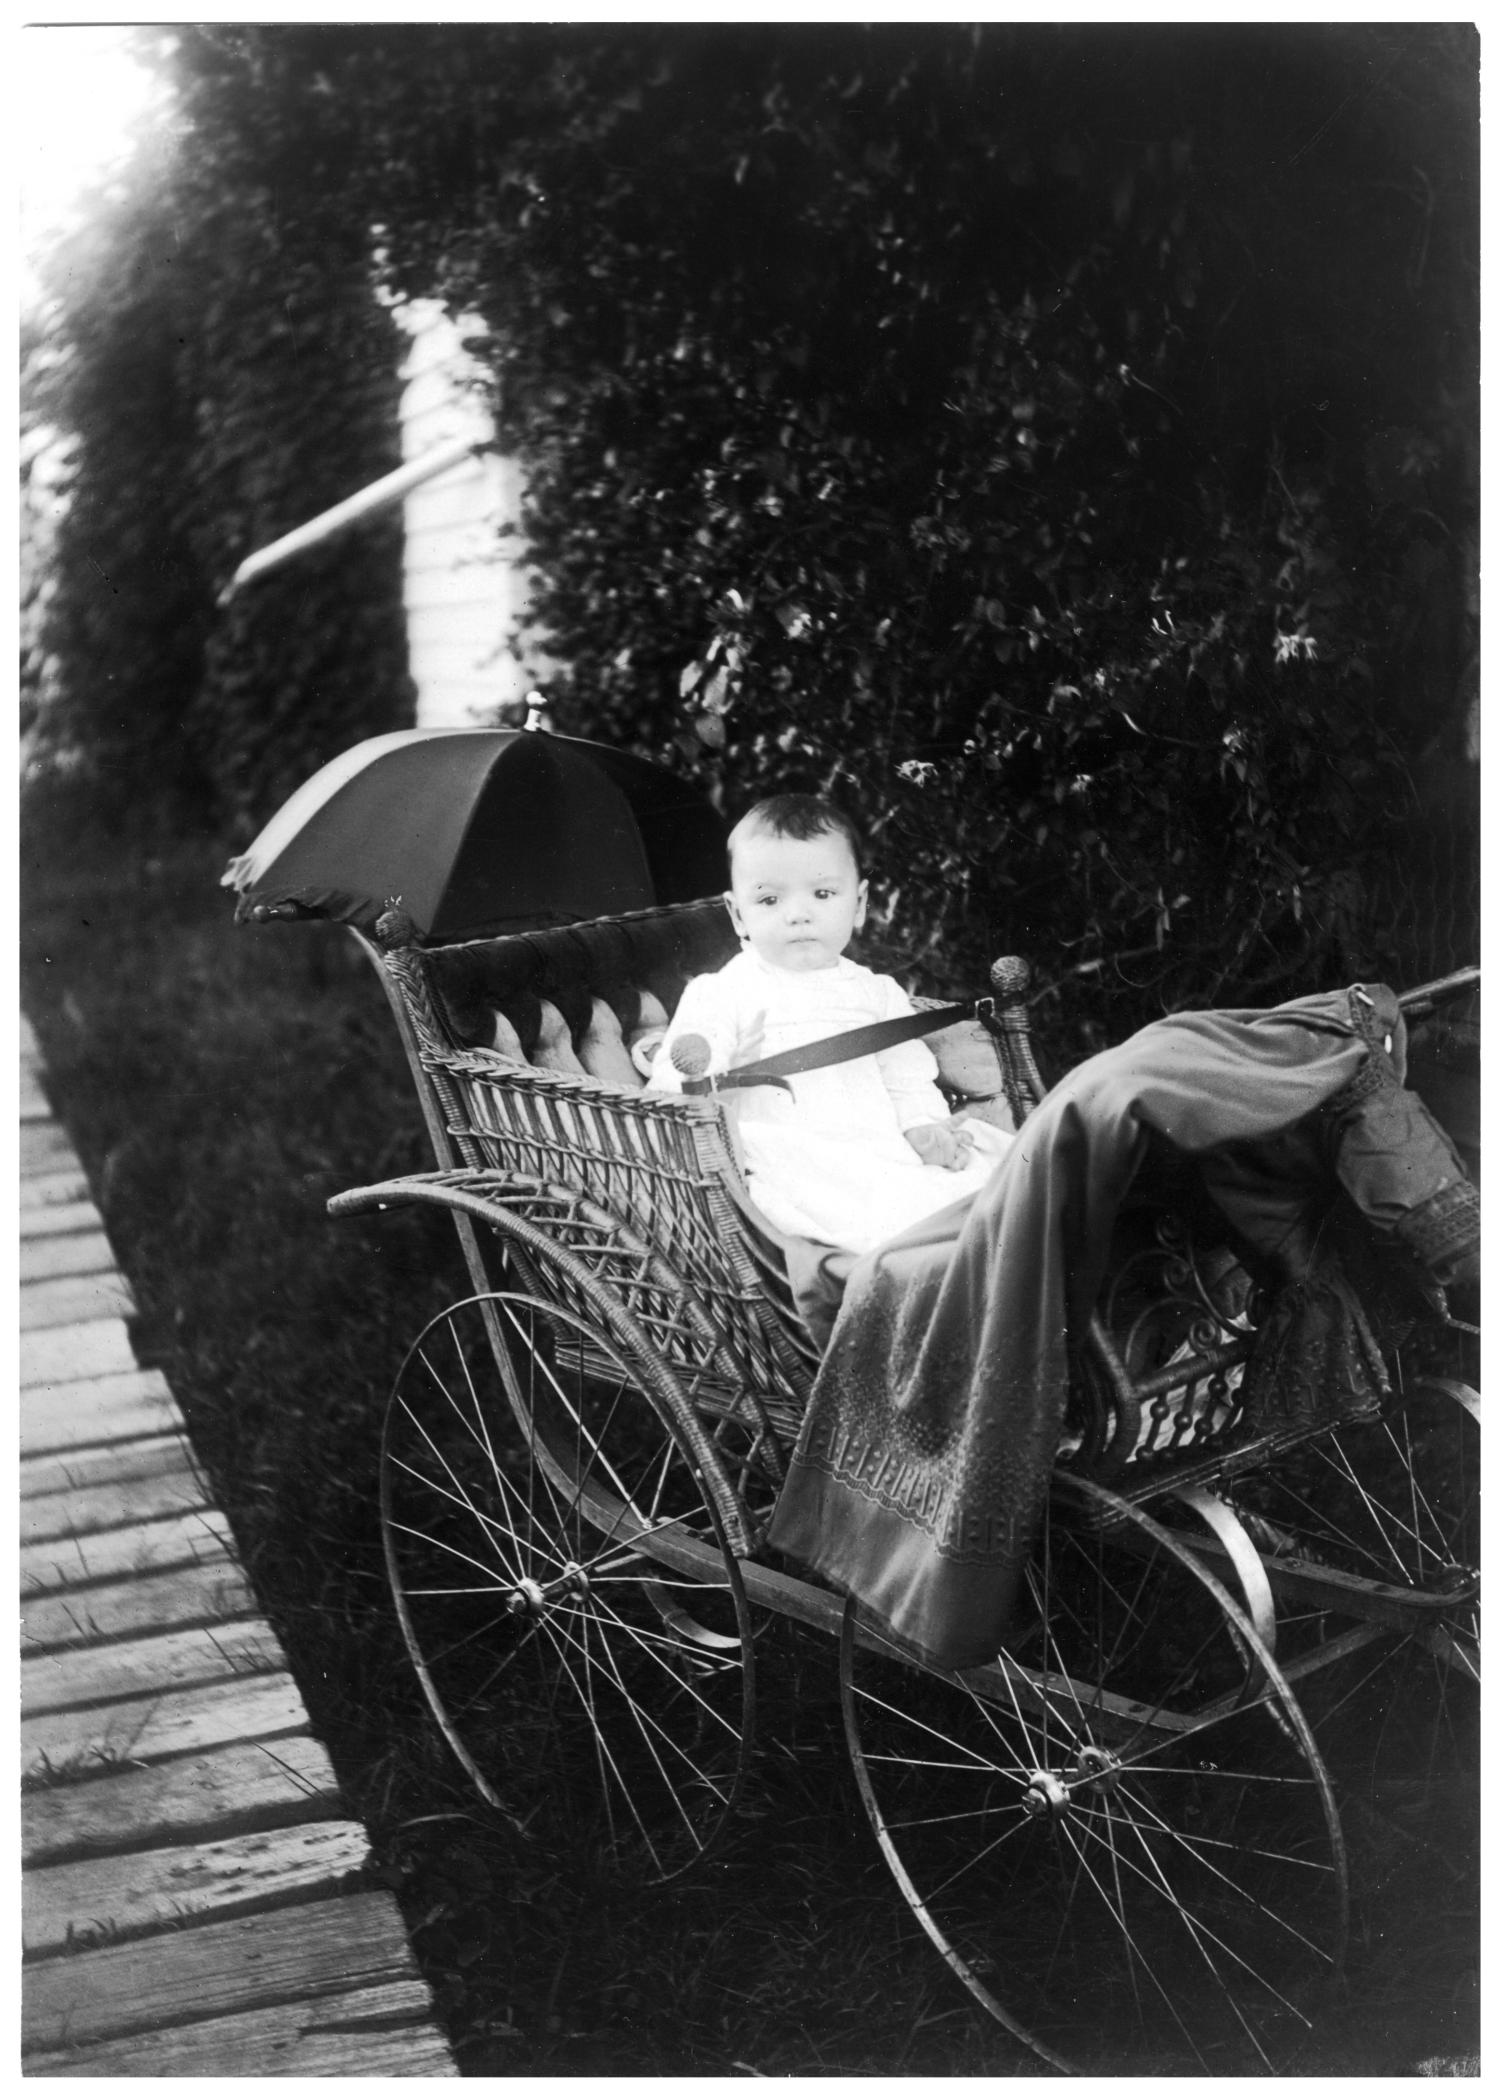 [Baby Outdoors in a Carriage]                                                                                                      [Sequence #]: 1 of 2